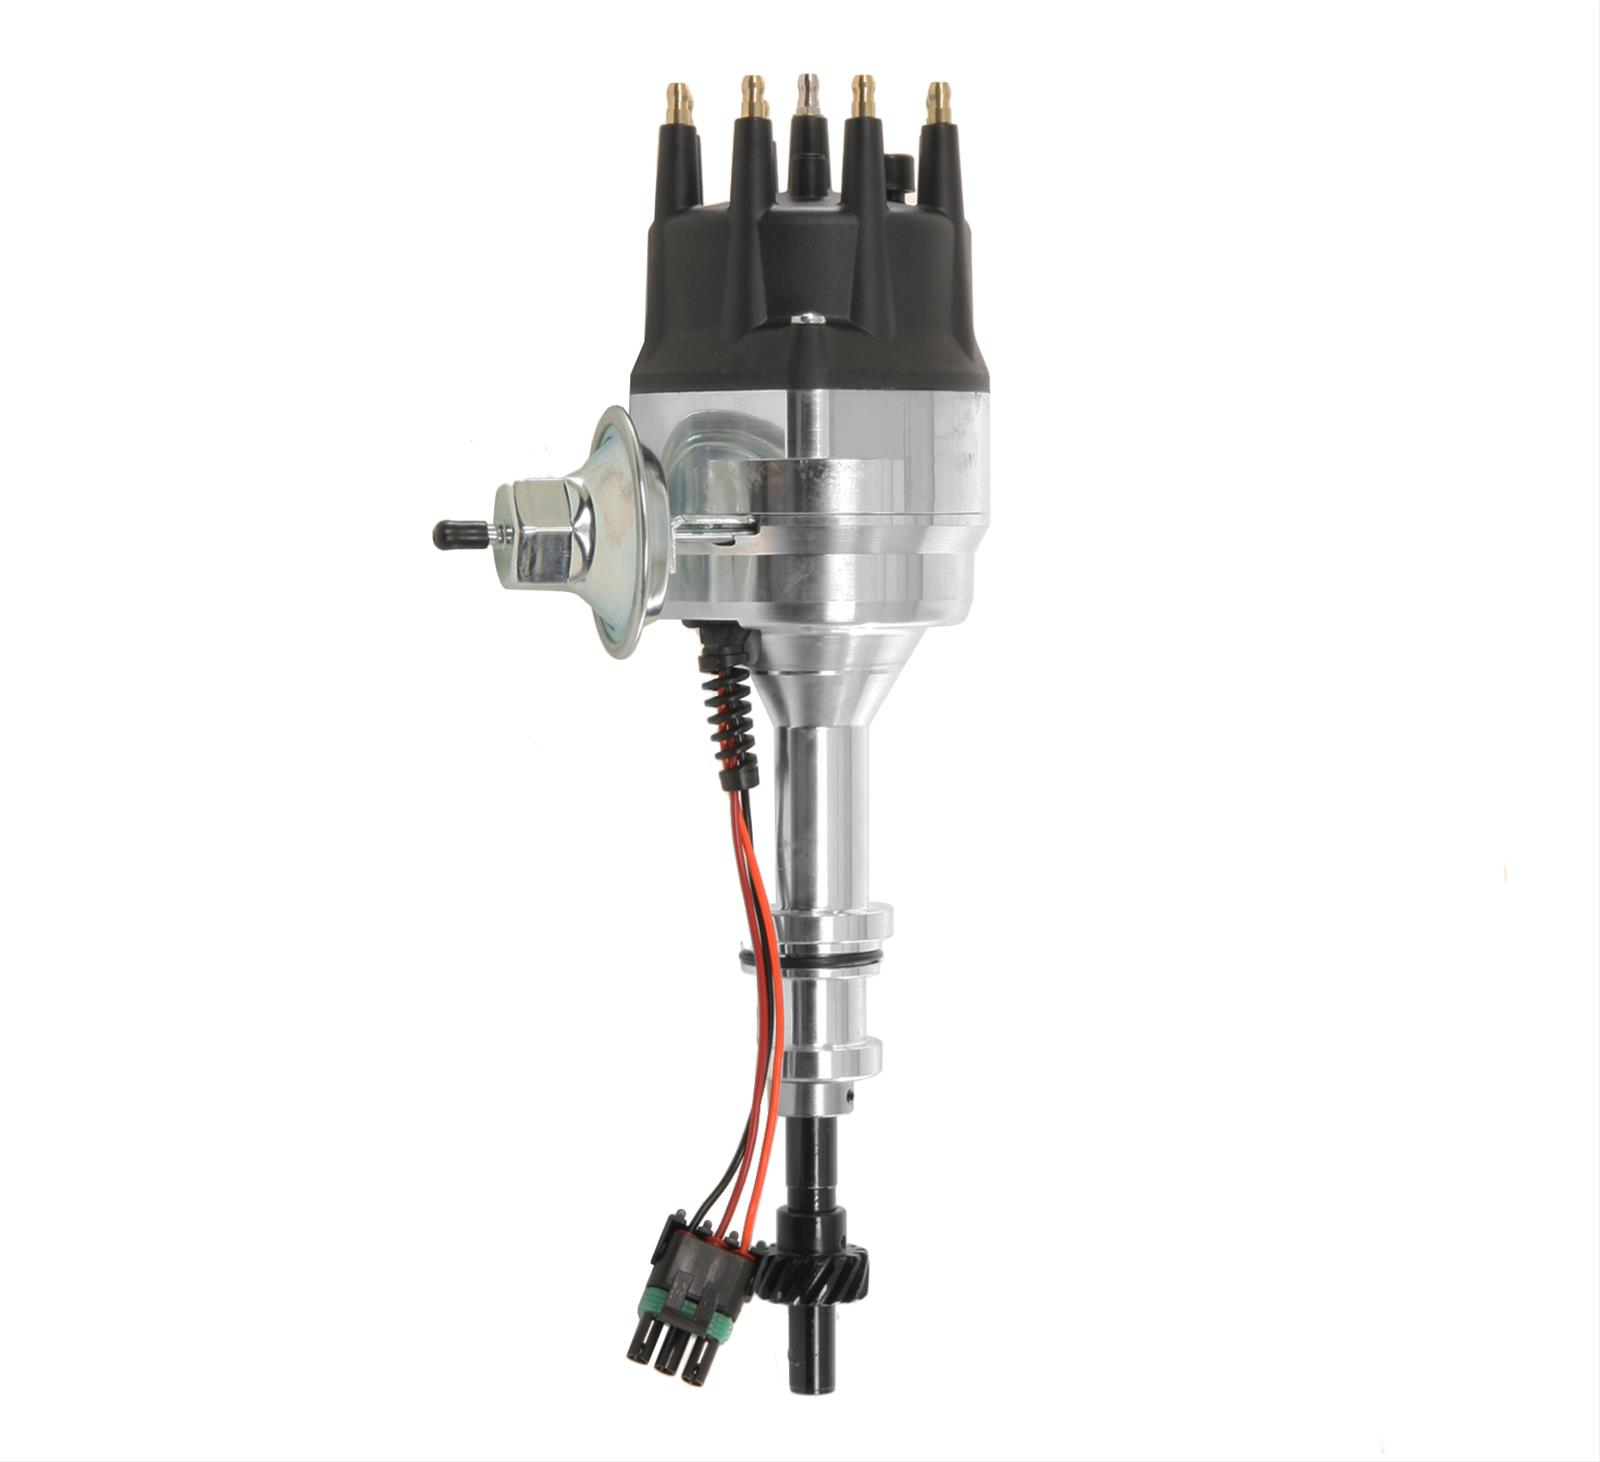 8360 Msd Distributor Free Worksheets Library Download And Print Wiring Diagram Ignition Pro Billet Ready To Run